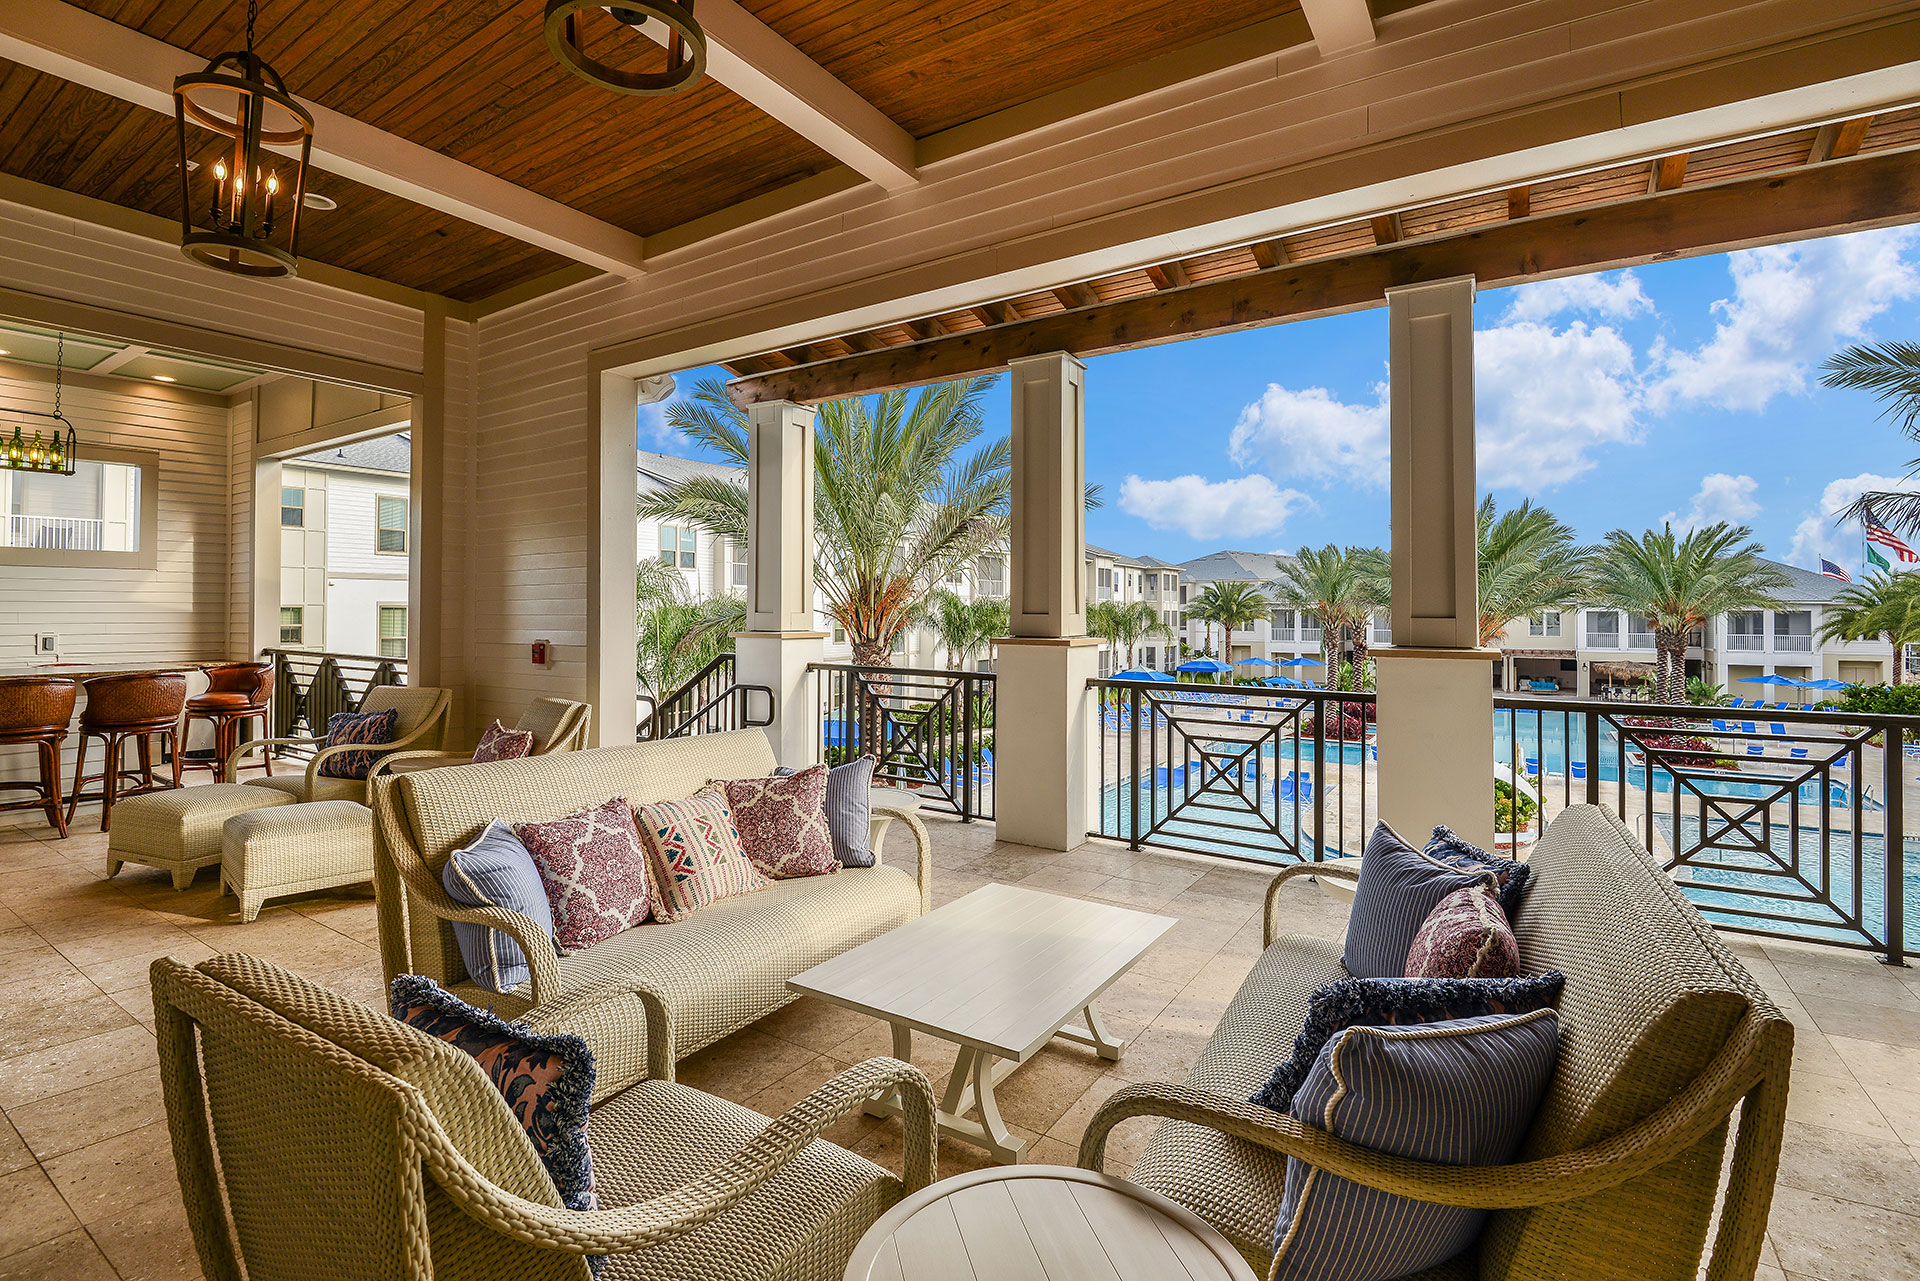 Lounging area of apartment complex with large pool and fancy chairs